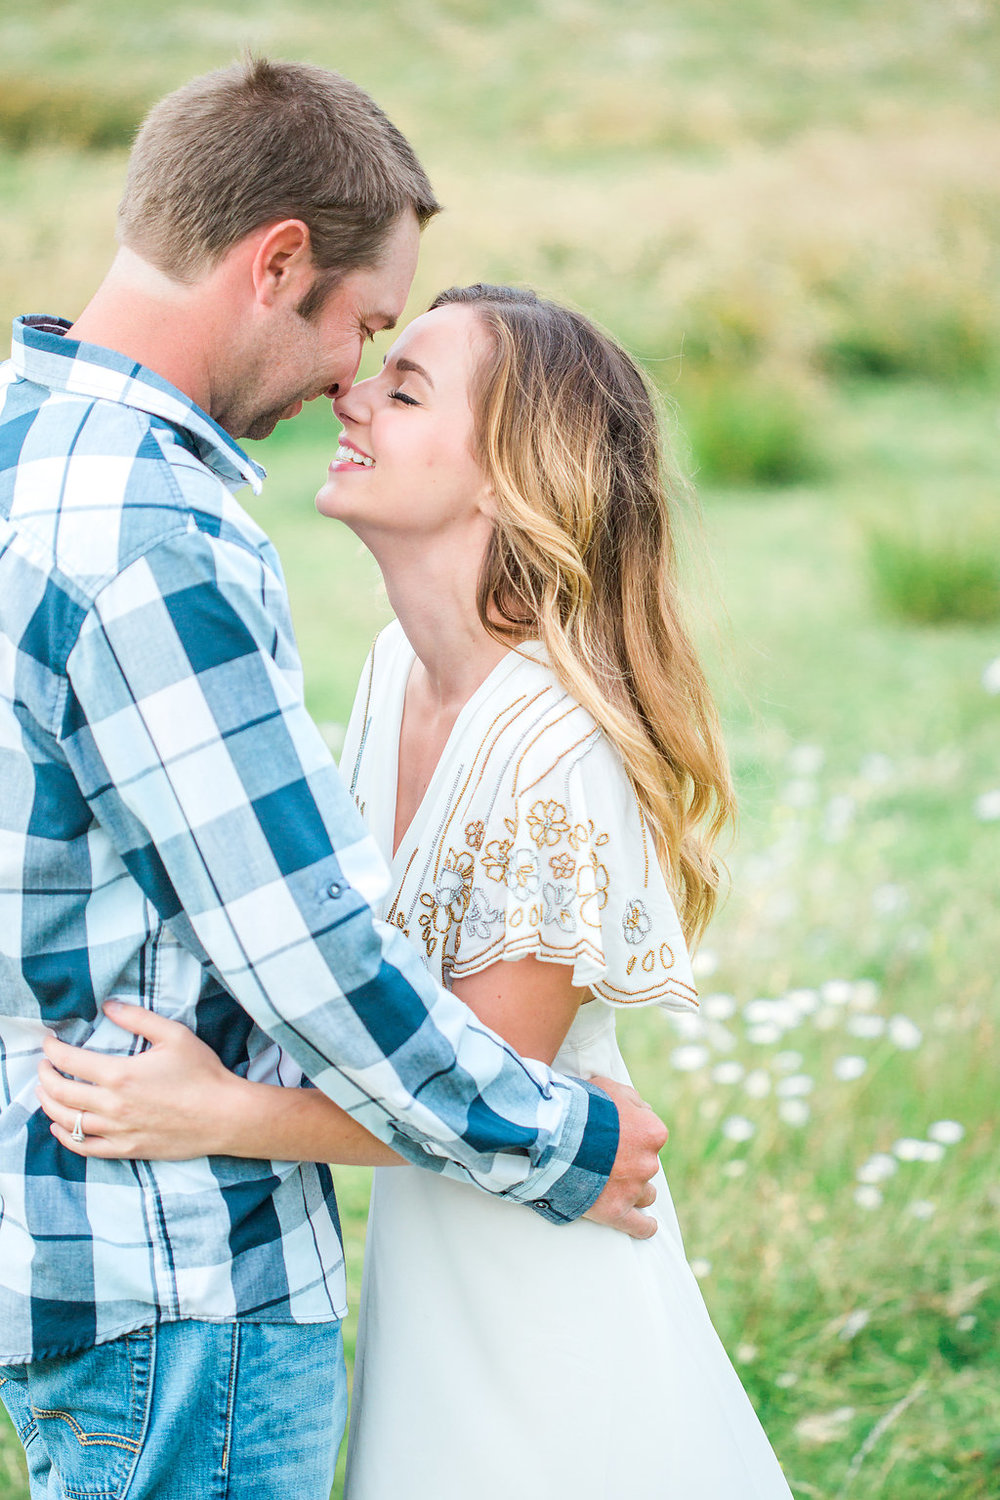 Beautiful outdoor engagement session | What to wear | Photo Inspiration | Engagement session | Portrait | White | Detail Shots | Mastin Labs | Engaged | Fuji 400 | Kiss | Couple in Love